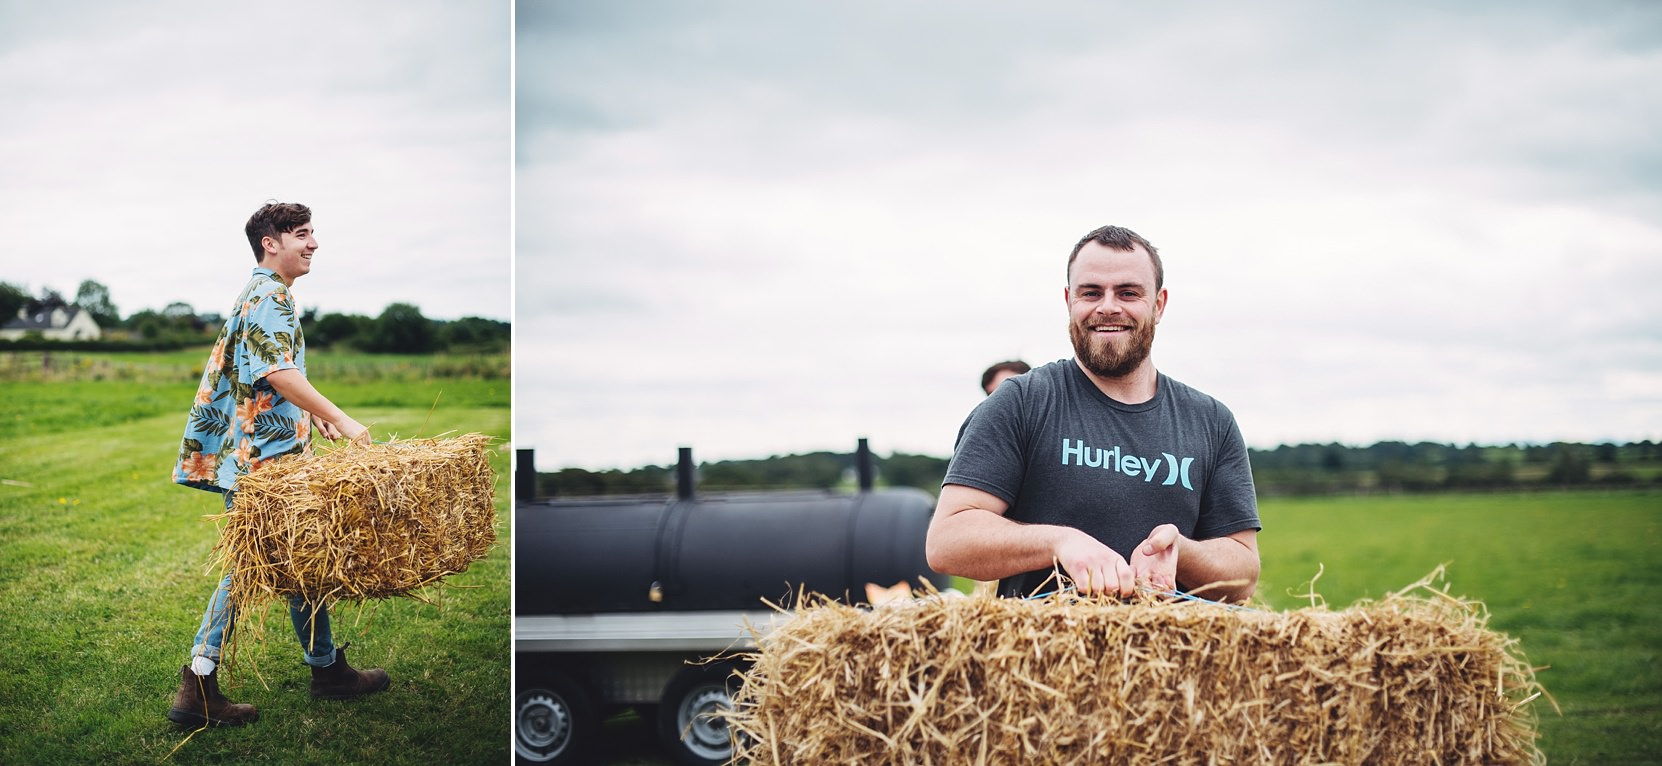 Bales of hay for wedding seats